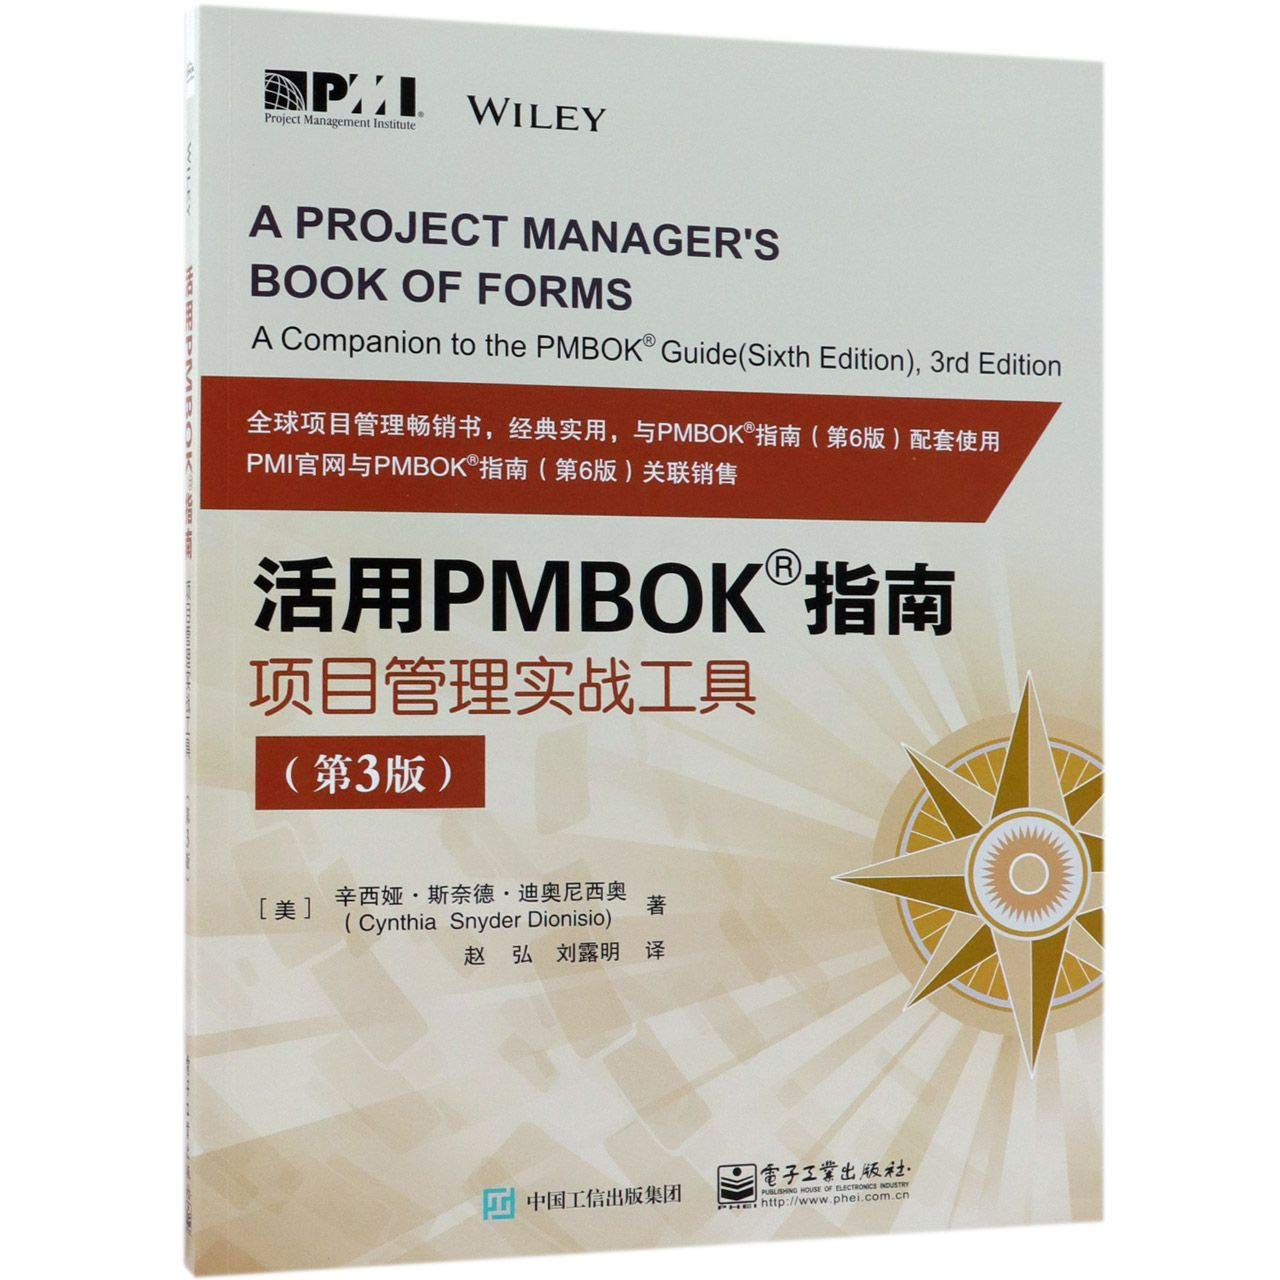 A Project Manager's Book Of Forms A Companion to the PMBOK